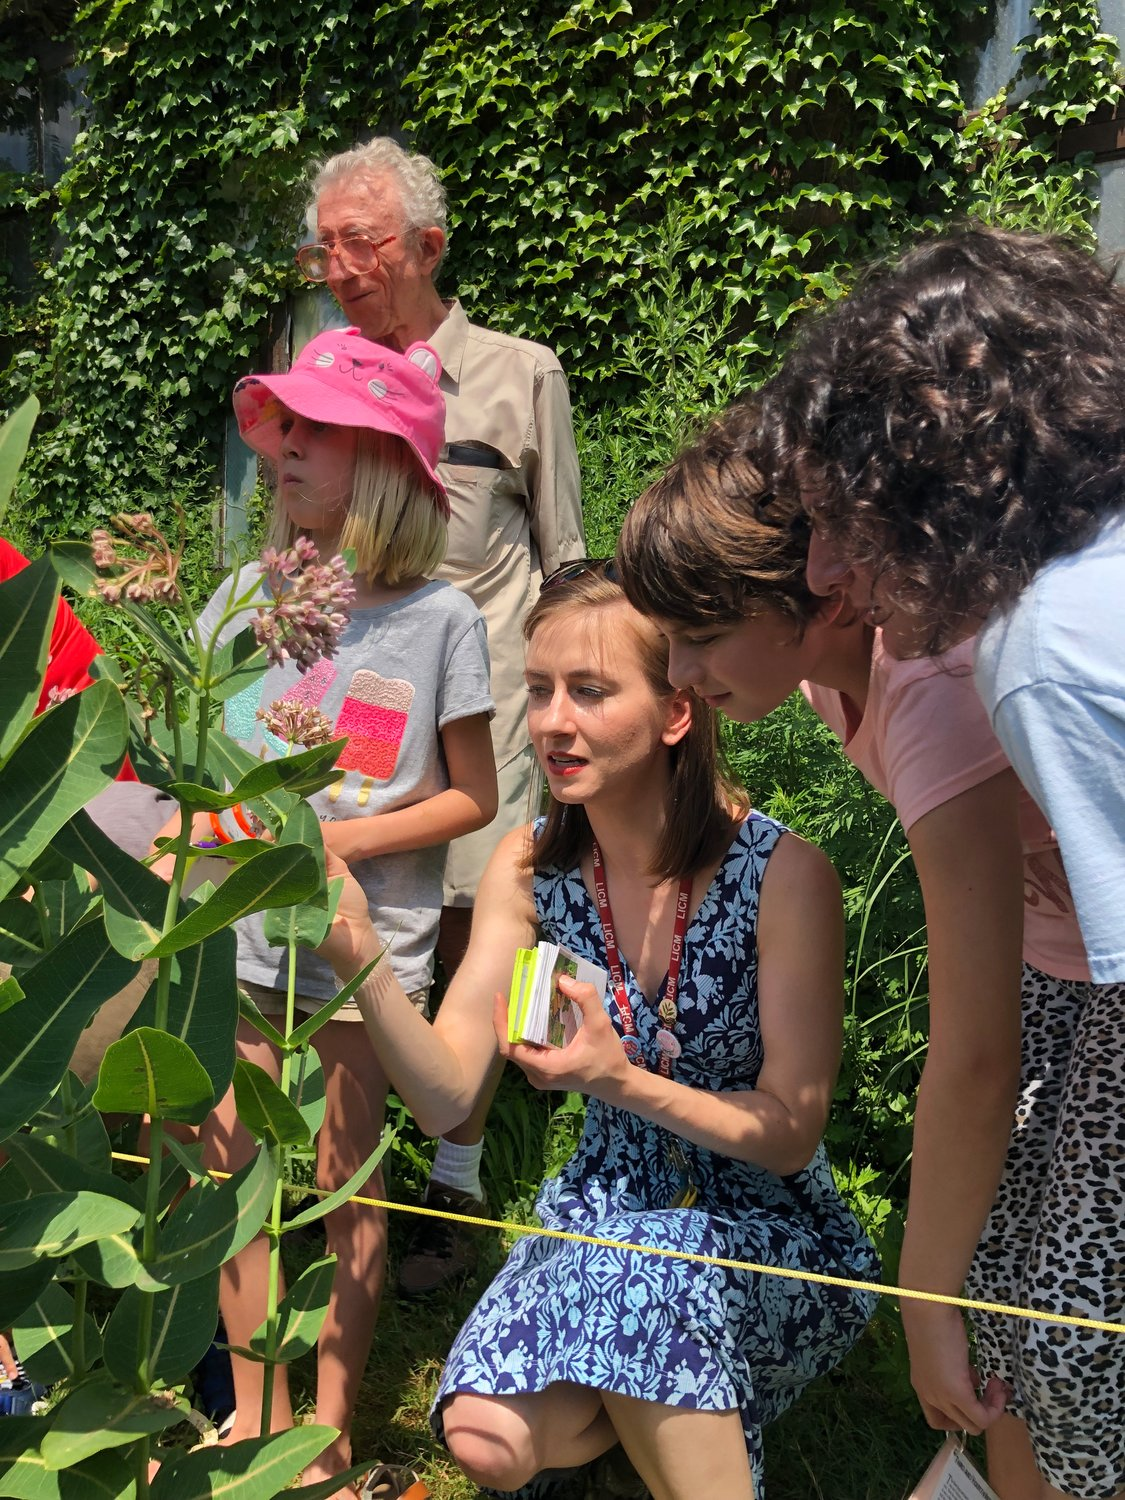 Families can study monarch butterflies in Long Island Children's Museum's Milkweed Garden on Friday afternoons.